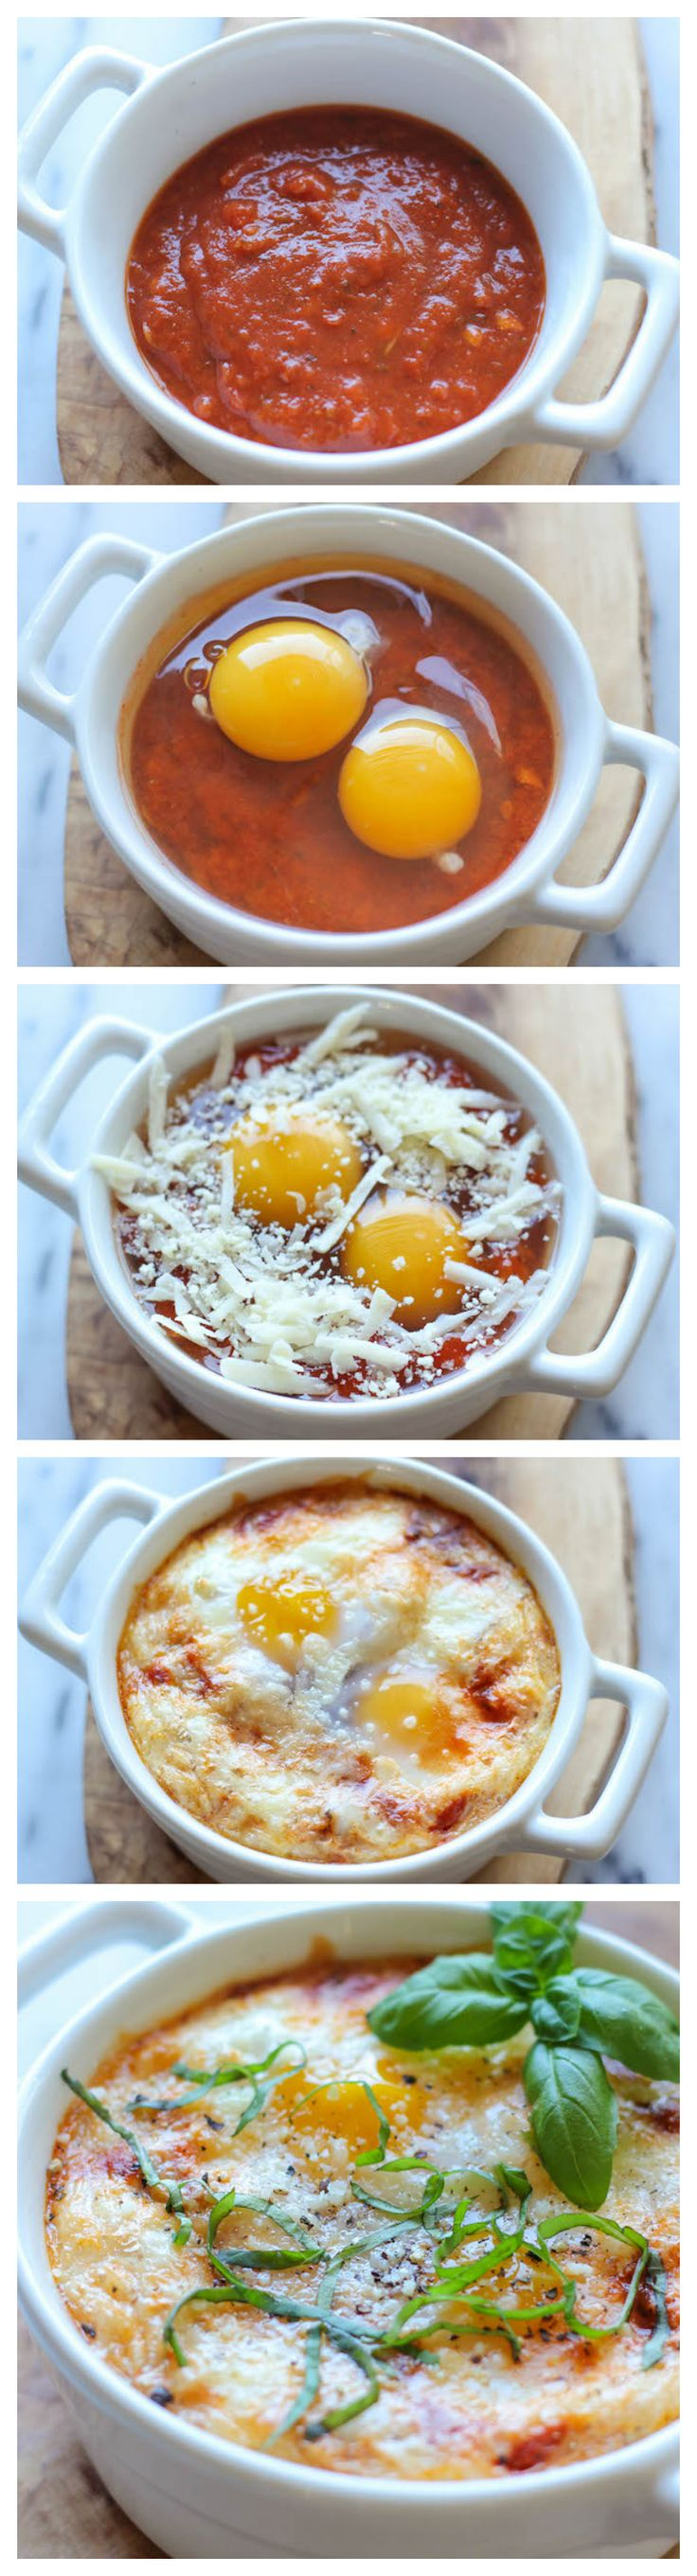 italian baked eggs recipe. Black Bedroom Furniture Sets. Home Design Ideas